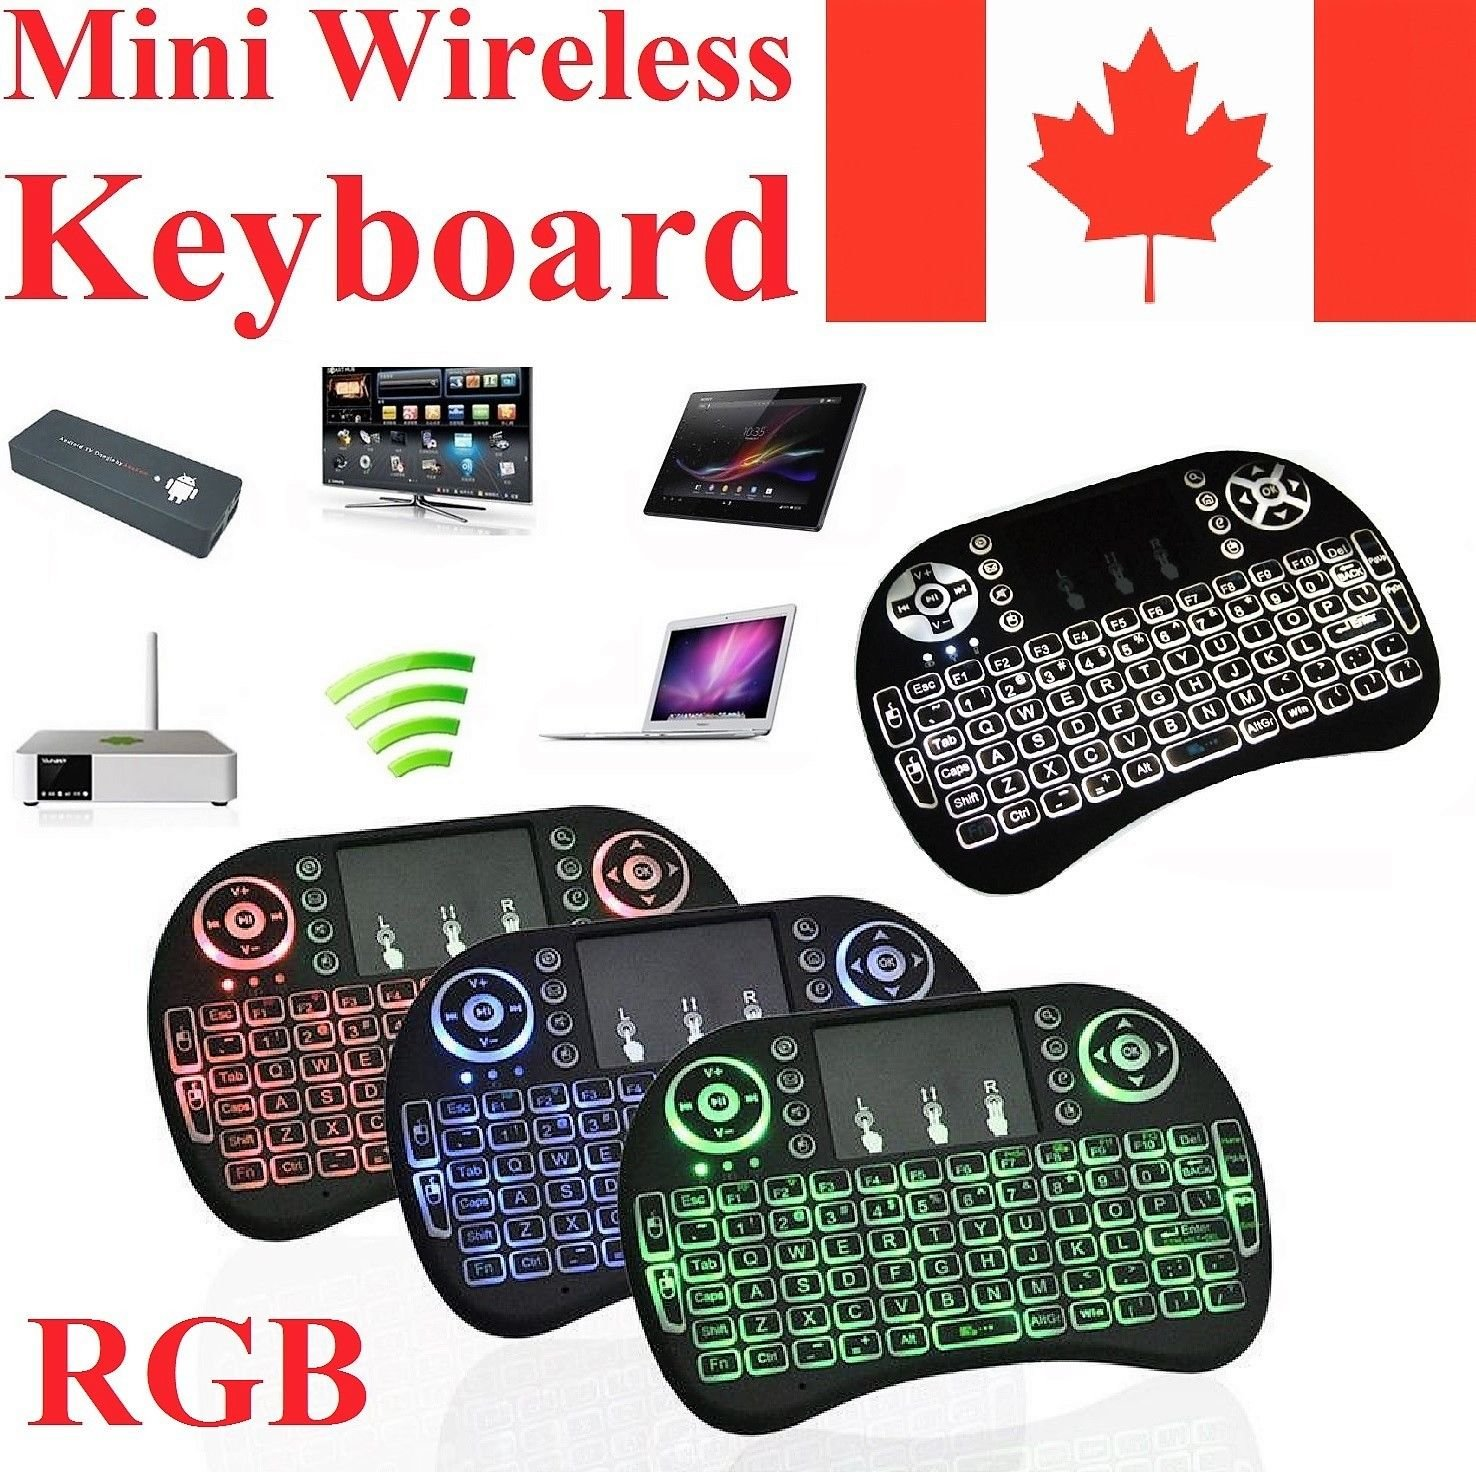 2018 Newest CIBN i8+ Mini Wireless Touch Keyboard Handheld Remote, Touchpad Mouse Combo, 3 Color LED Backlit Remote Control for Android TV Box, PS3 Xbox, Raspberry Pi 3, HTPC,Windows 7,8,10. china